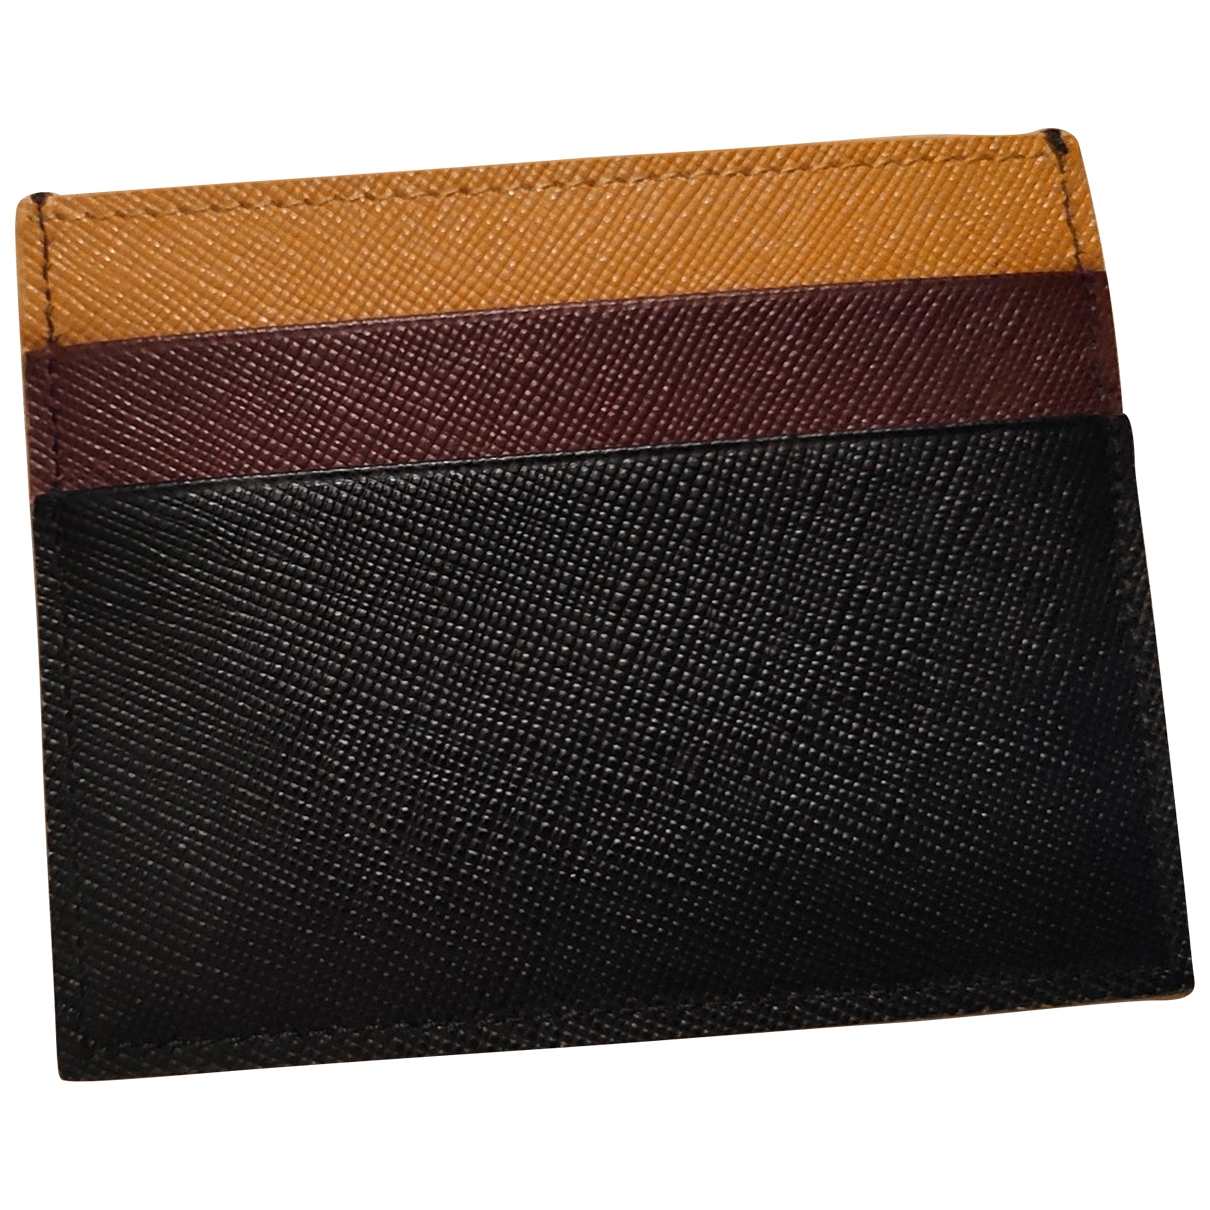 Marni \N Leather wallet for Women \N